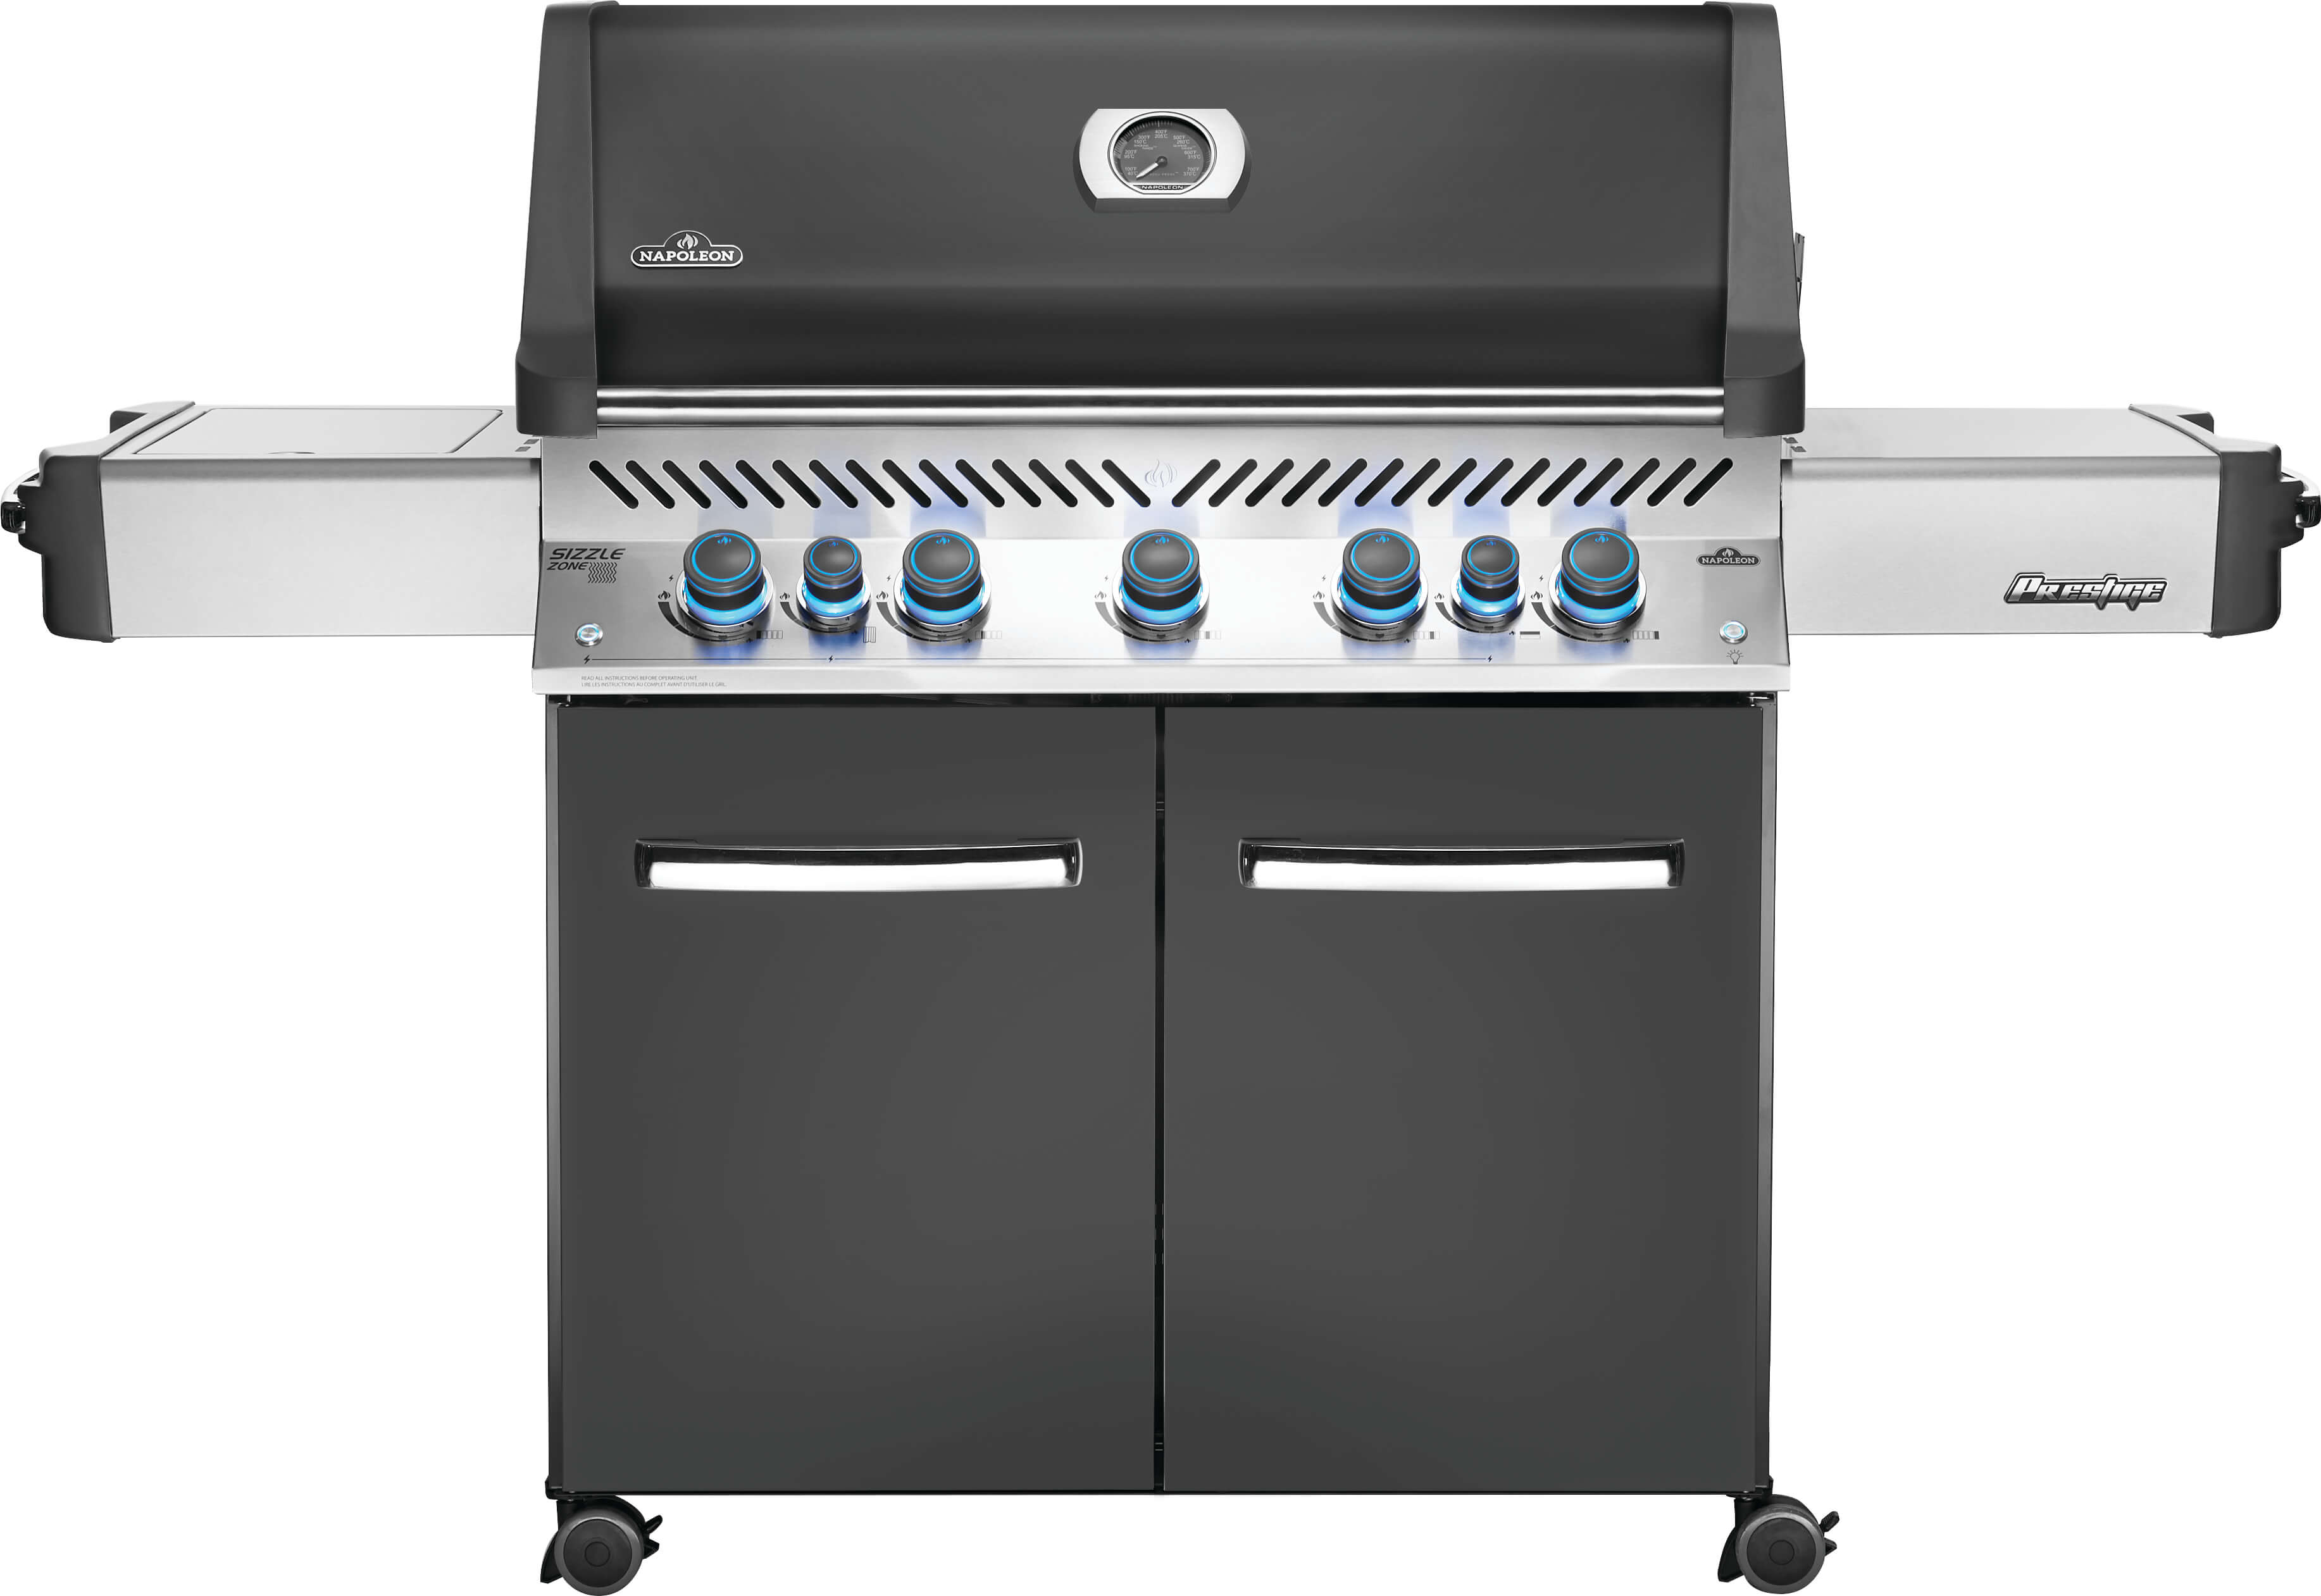 Prestige® 665 Propane Gas Grill with Infrared Side and Rear Burners, Grey